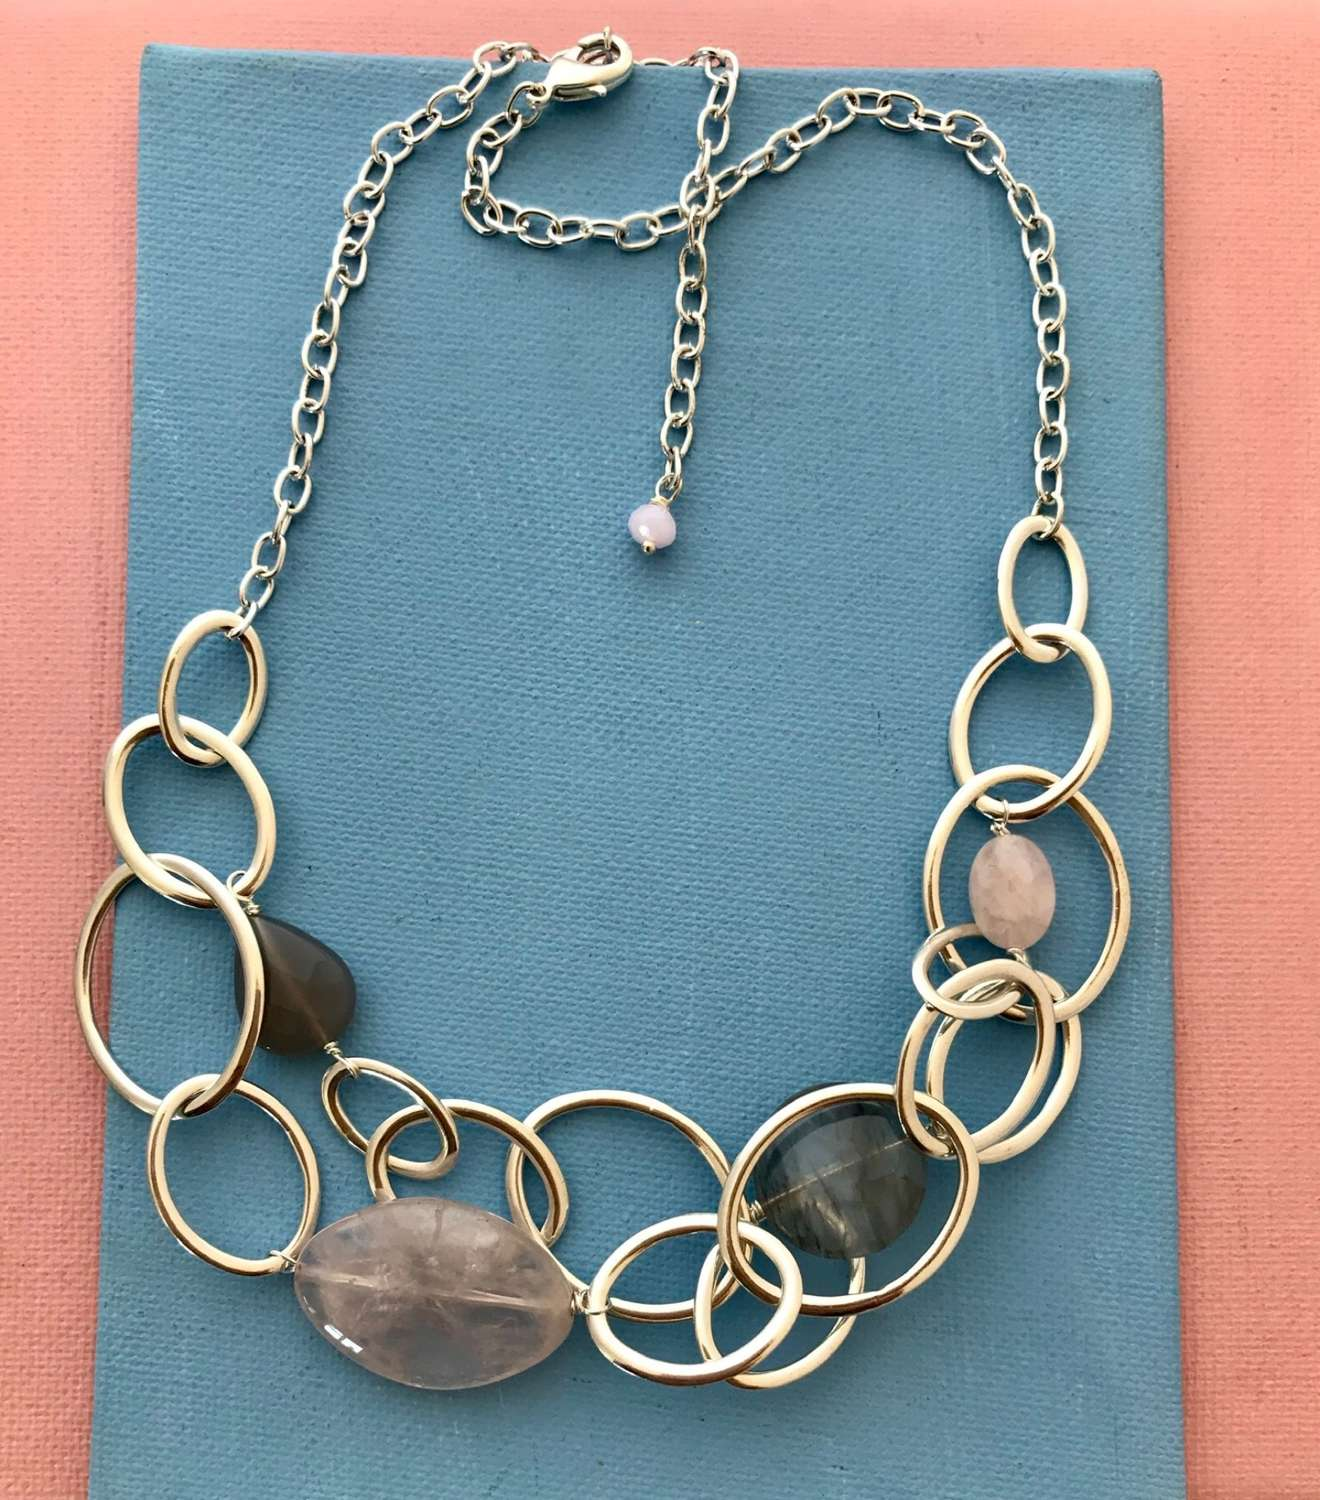 Mandy necklace silver/pale pink and grey